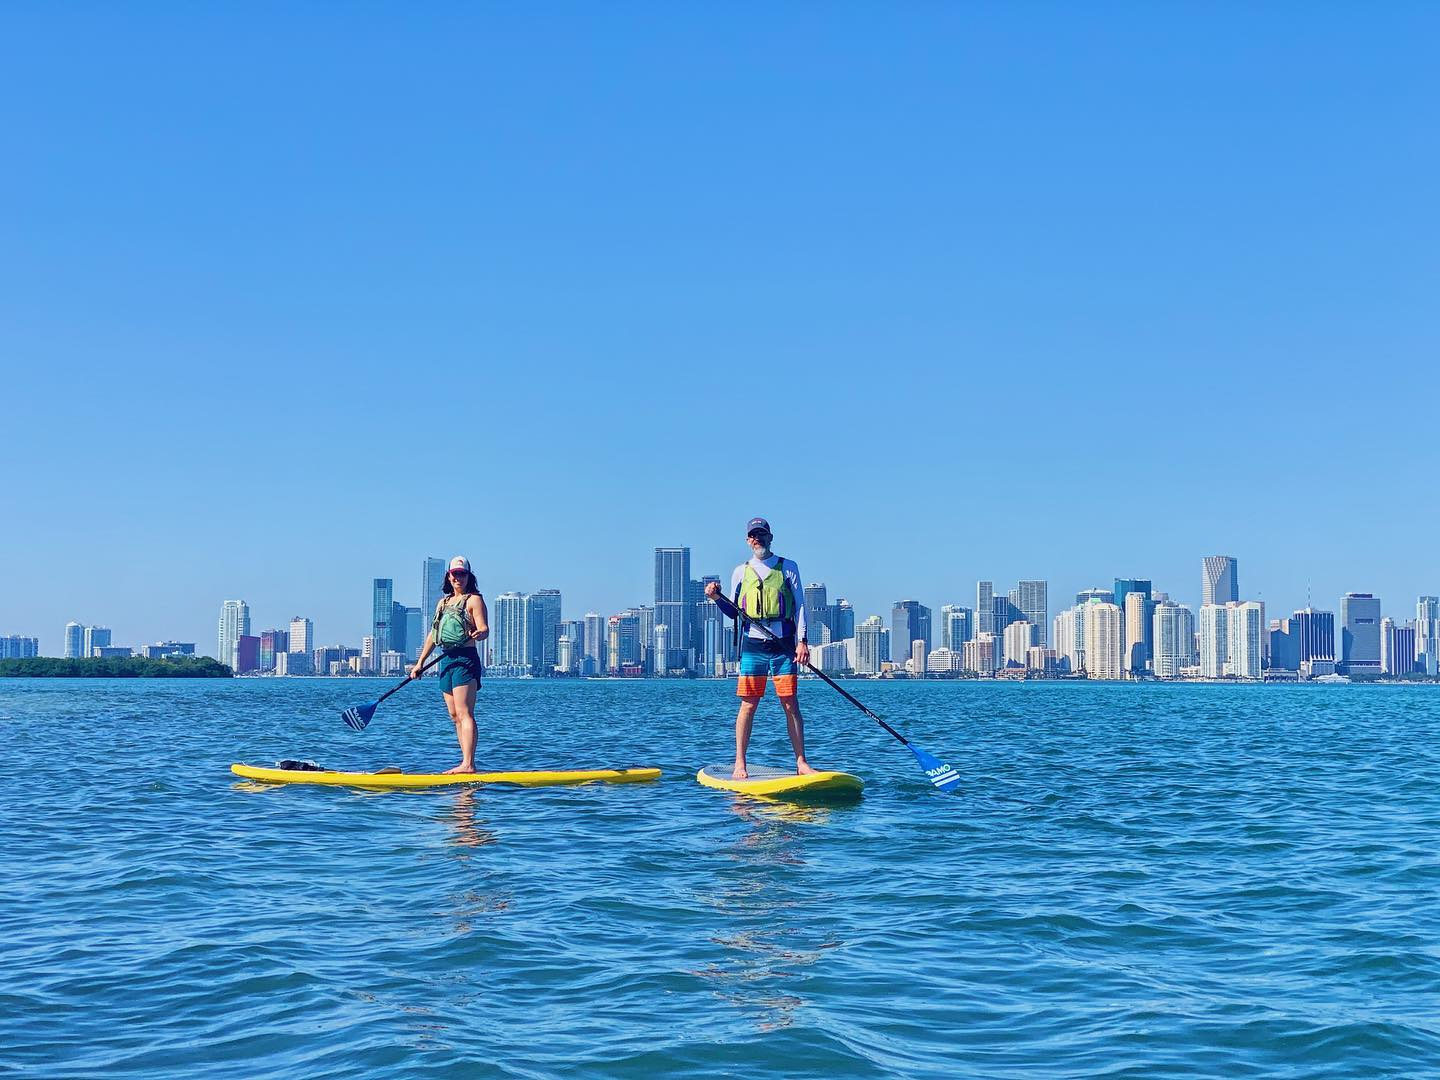 Daily Paddleboard Rentals - Online Reservations available. Walk-ins are welcomed.